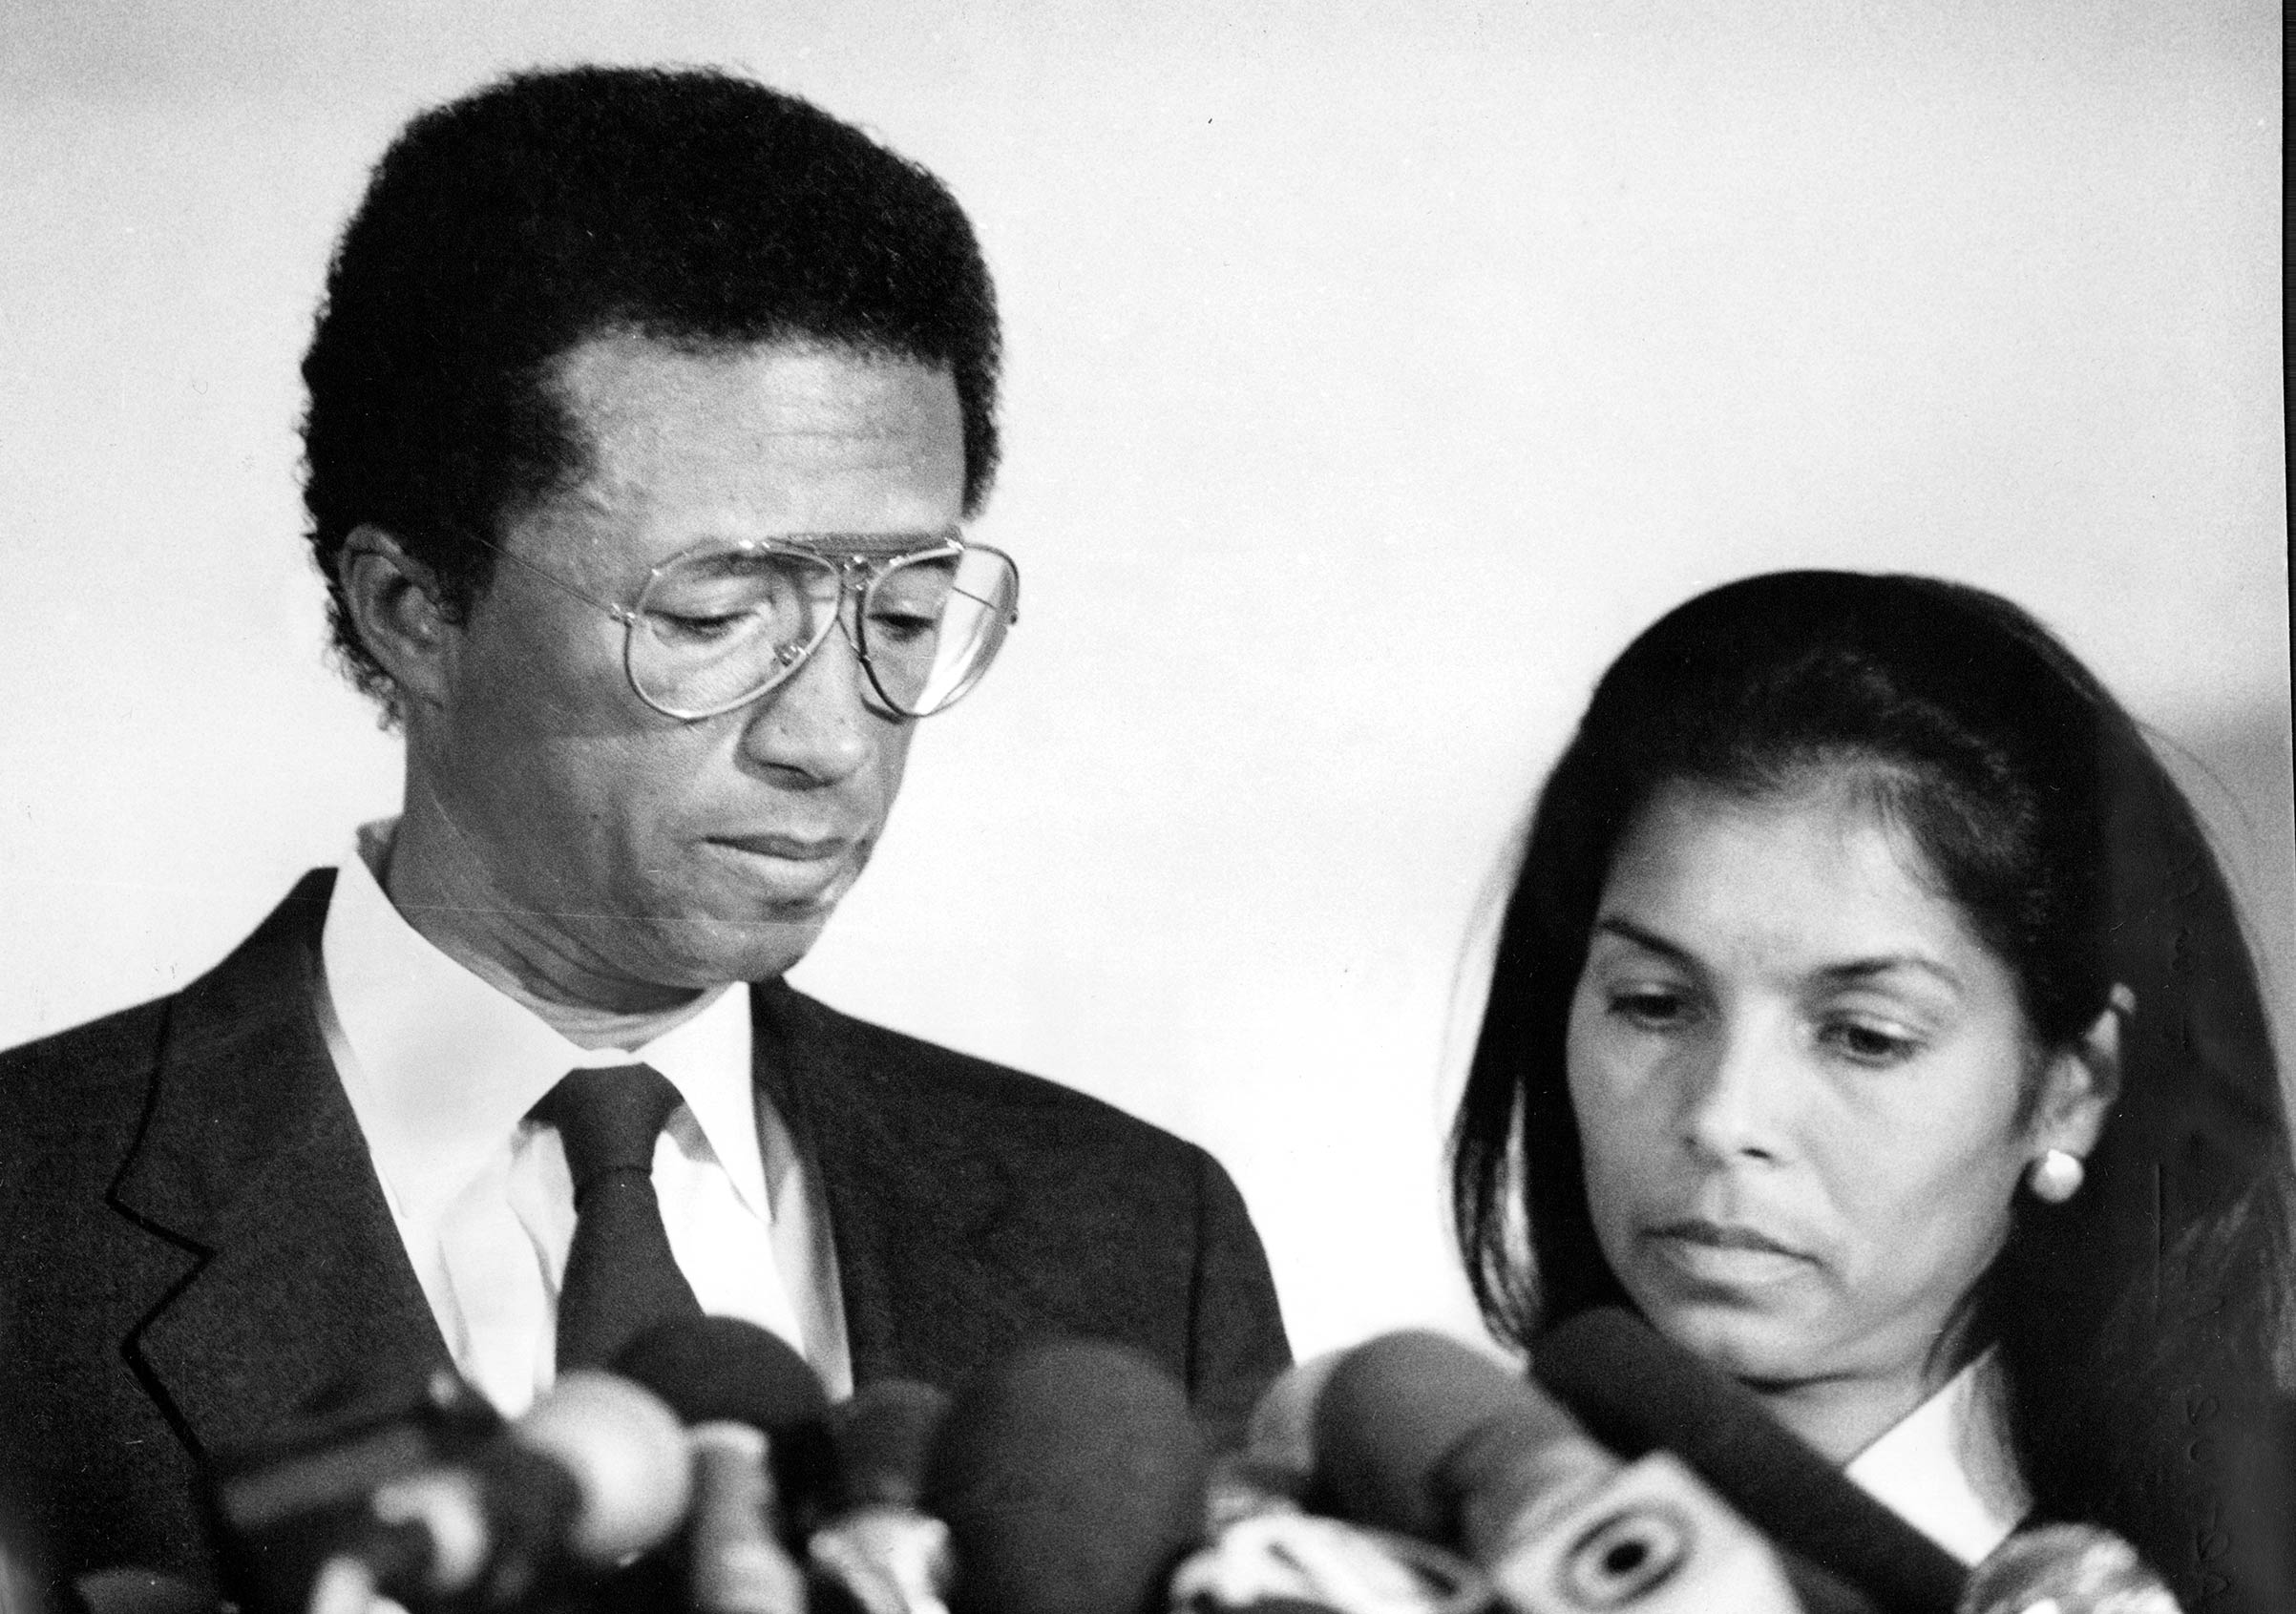 Tennis star Arthur Ashe, accompanied by wife Jeanne, announcing he contracted HIV after a blood transfusion on Apr. 8, 1992, in midtown Manhattan.